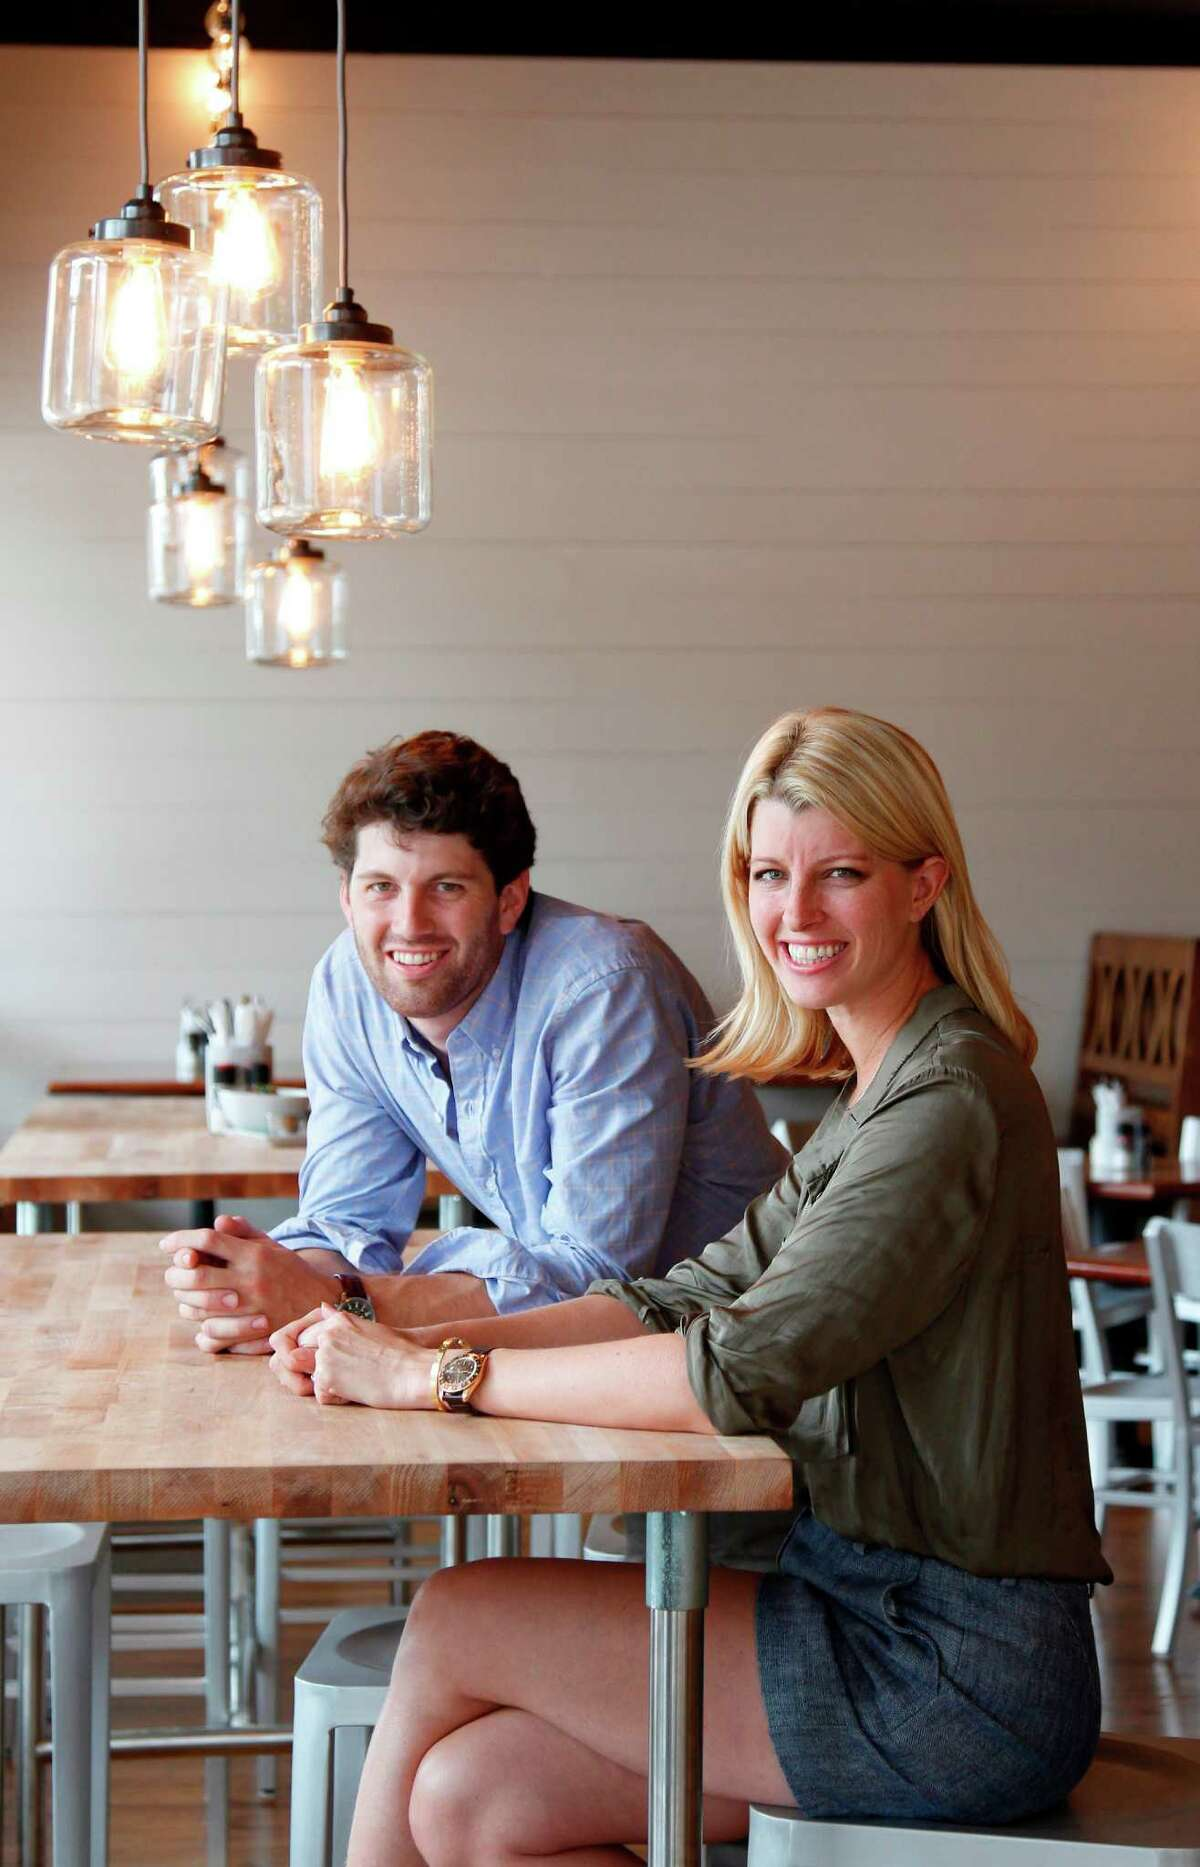 Siblings Nick Adair and Katie Adair Barnhart, co-owners of the Galleria-area Adair Kitchen, serve healthy food that tastes gourmet. nAmerican cuisine in their new Galleria restaurant on Thursday, Sept. 13, 2012, in Houston. ( Mayra Beltran / Houston Chronicle )